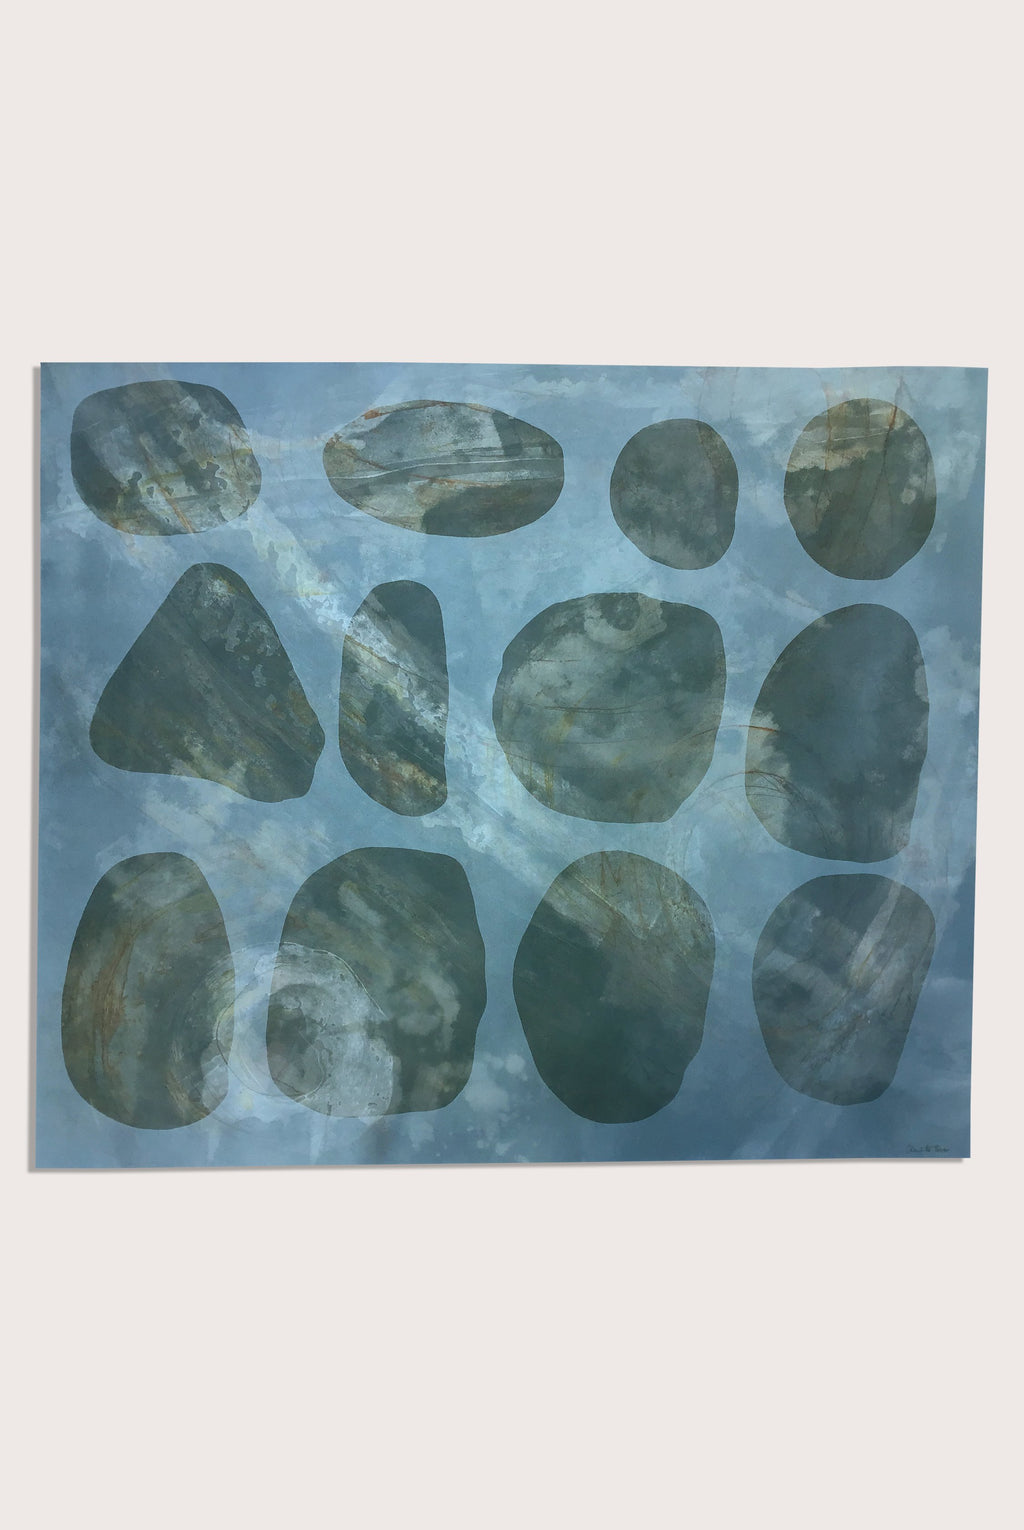 'Resonance 2', a littoral painting by contemporary, woman artist Charlotte Turner